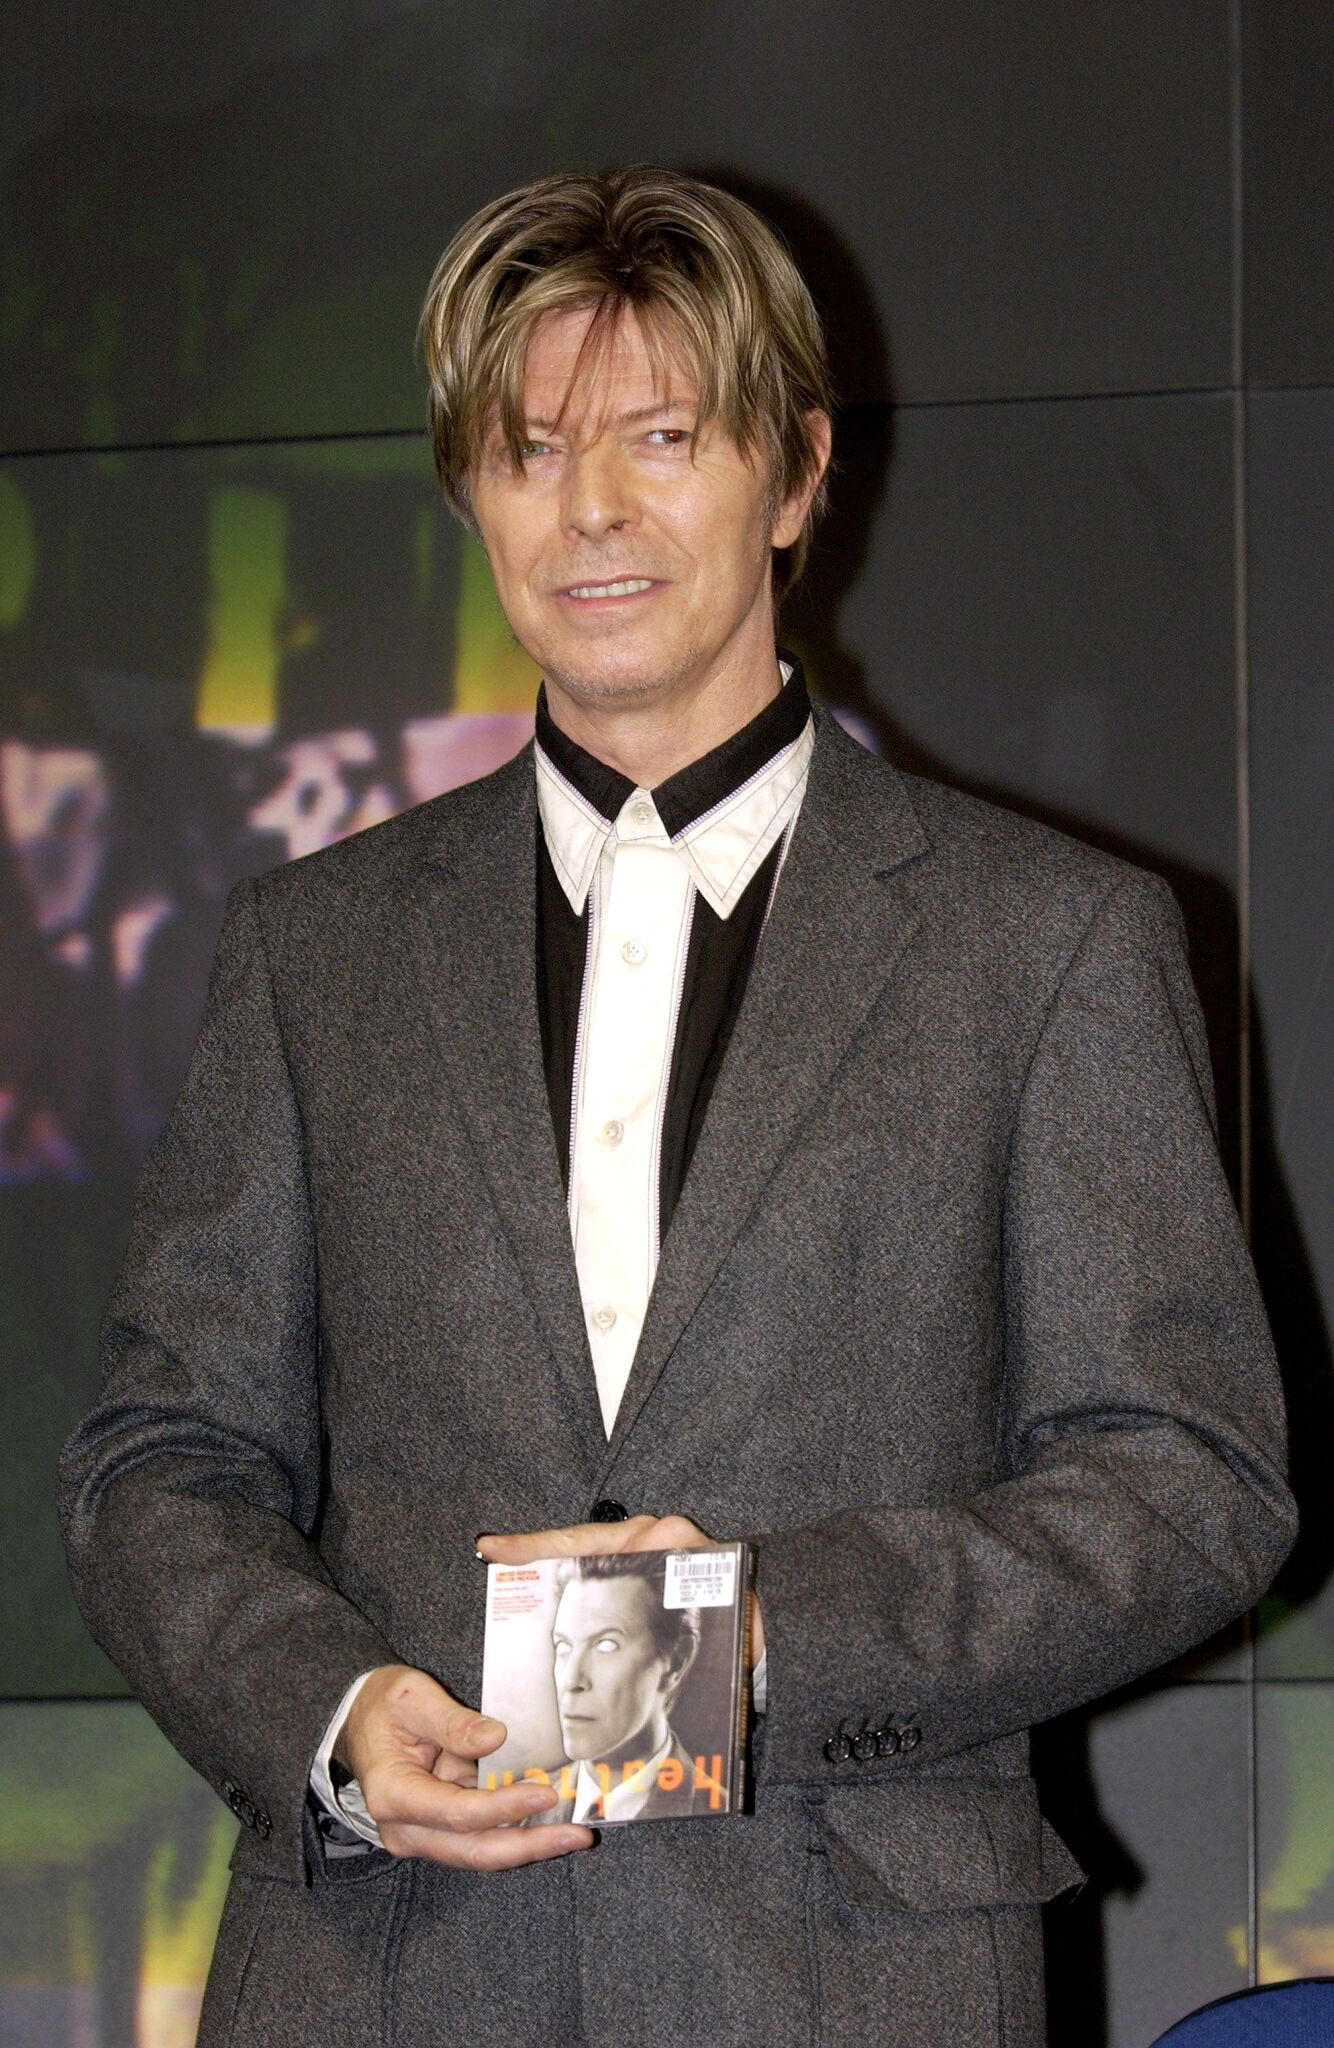 David Bowie Promoting His Album 'Heathen' At The Hmv Shop | Getty Images